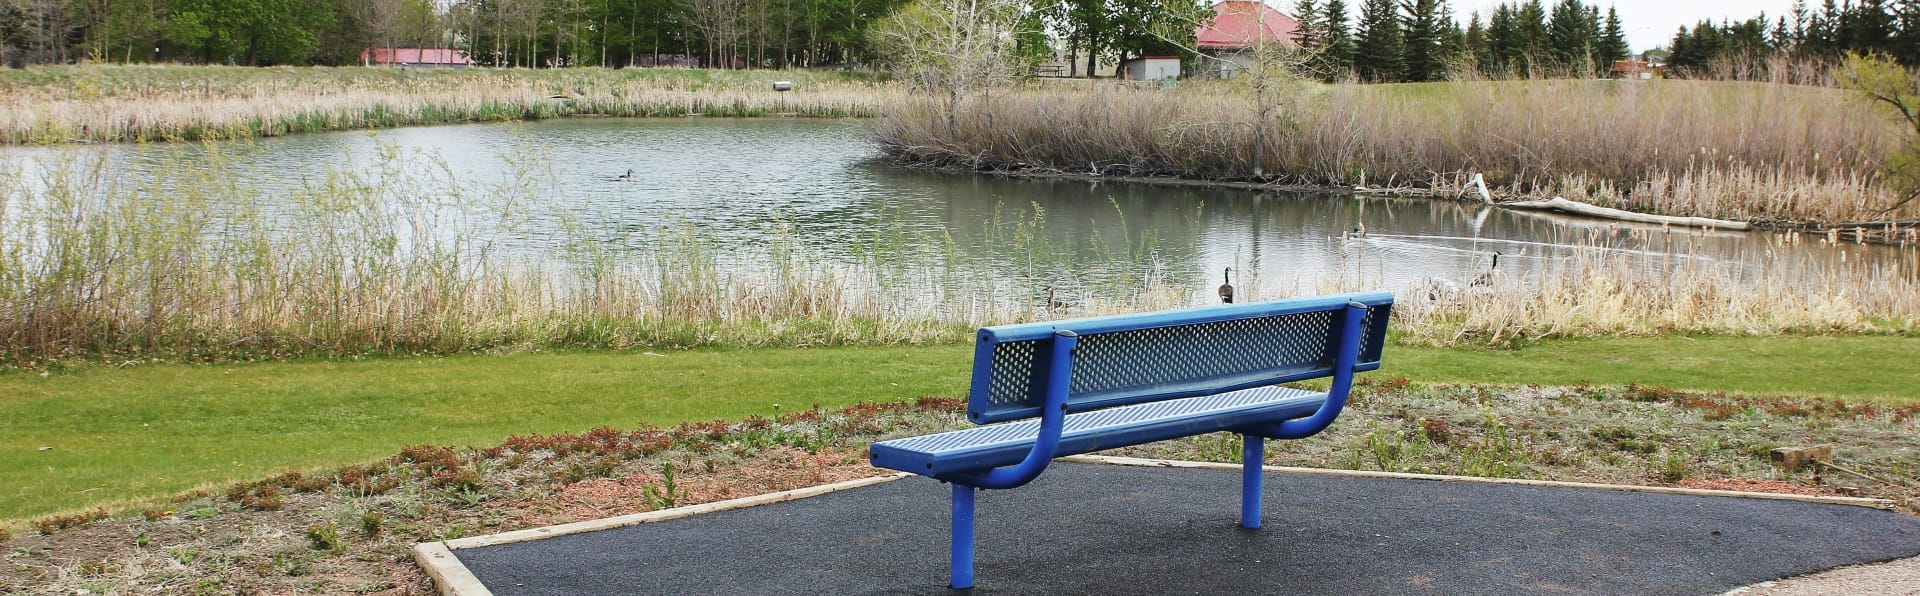 Blue park bench with pond in the background.